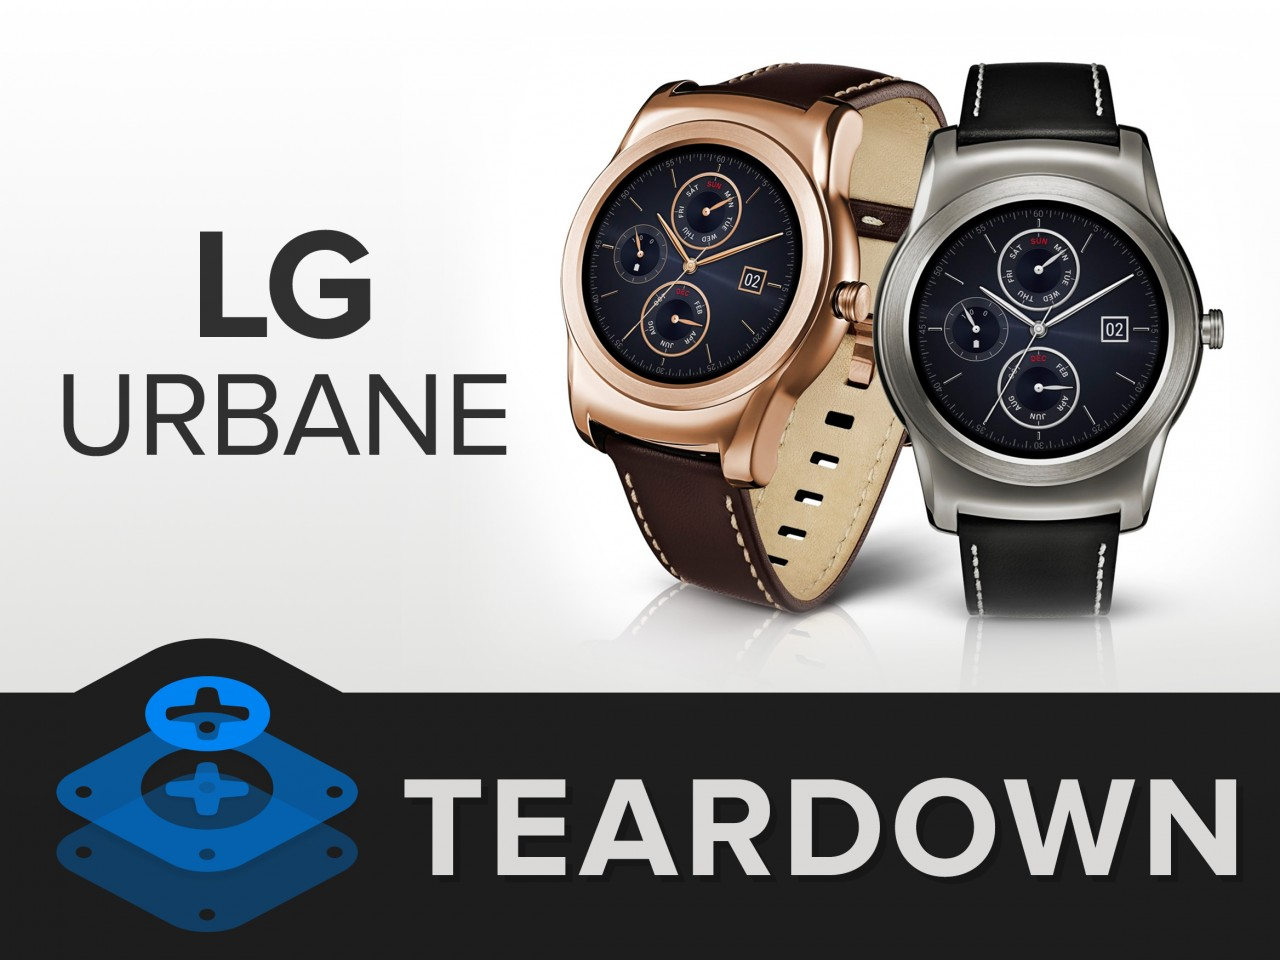 lg watch urbane teardown 1